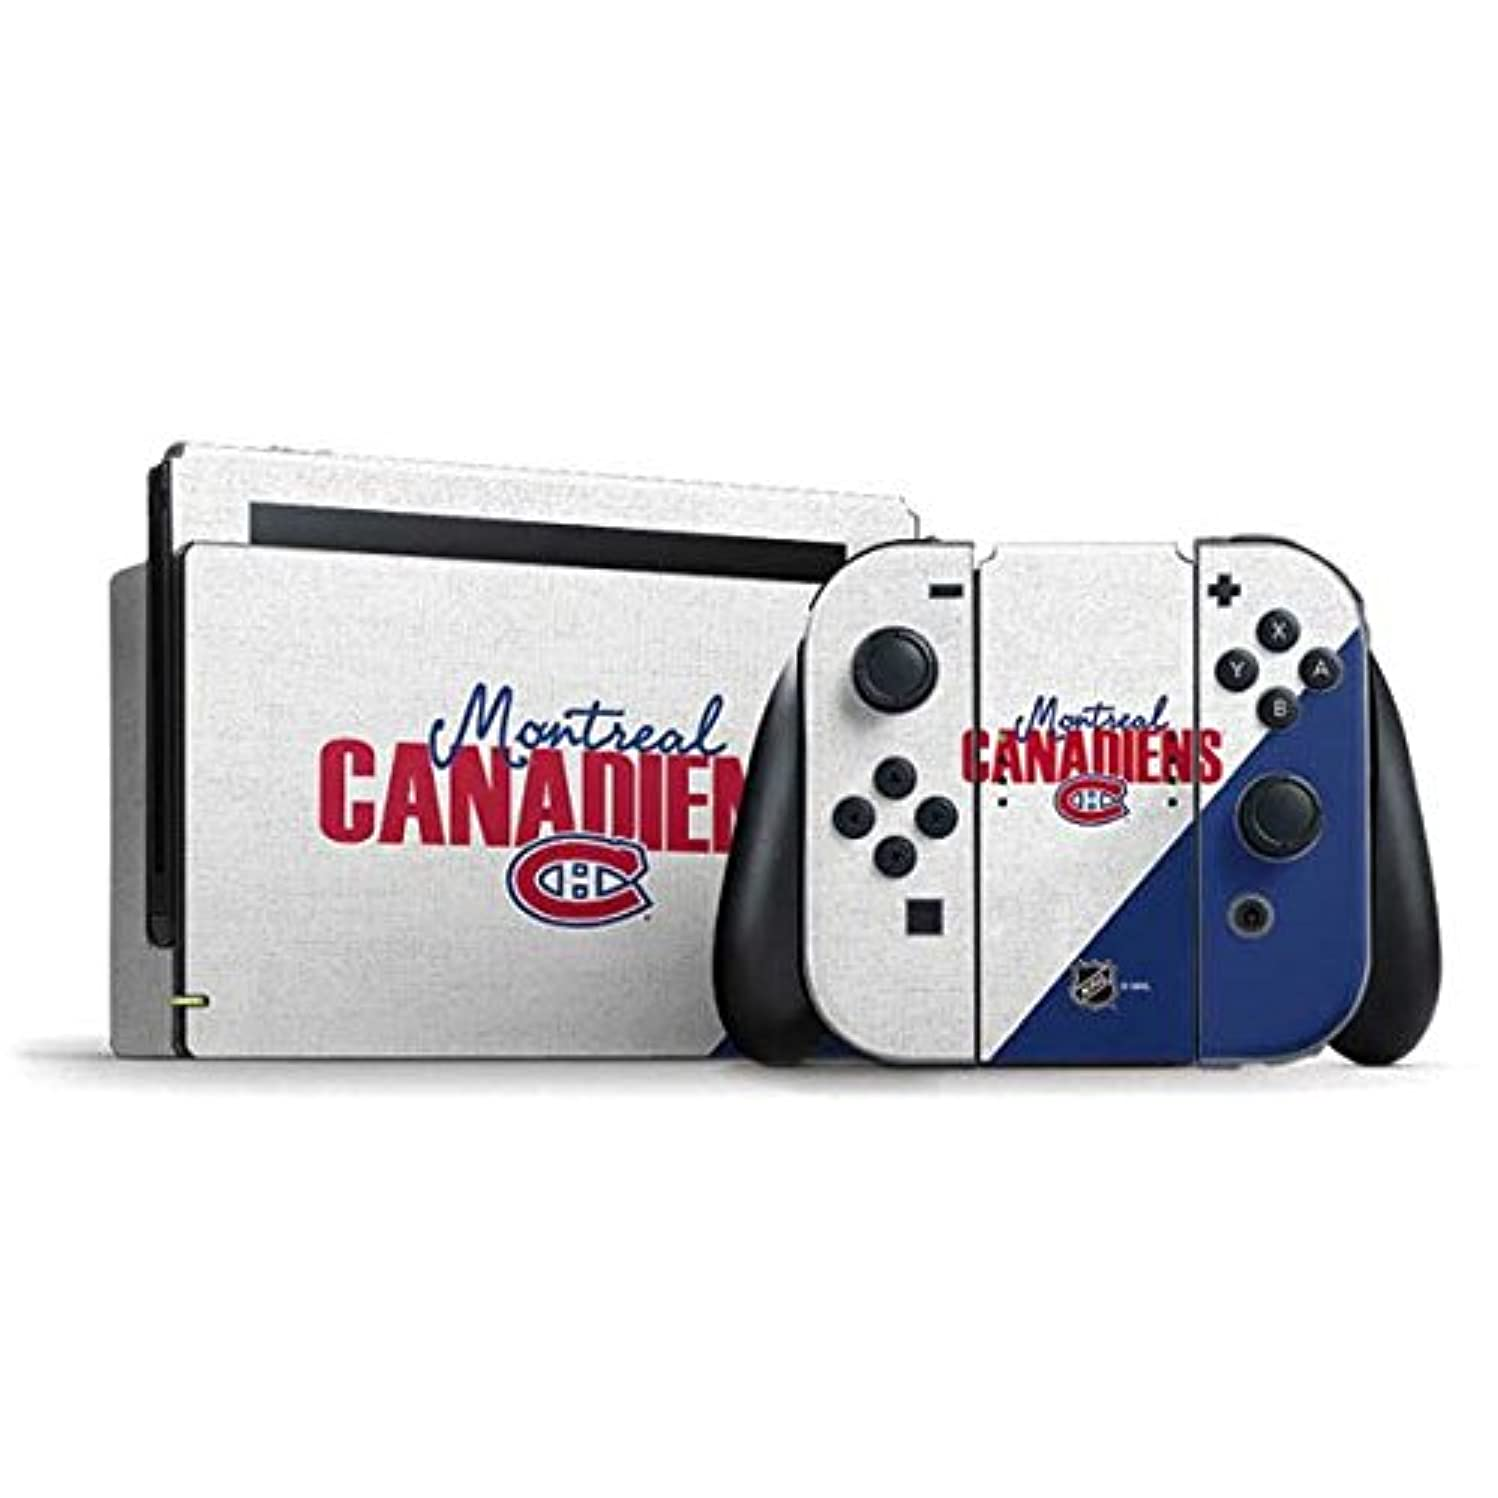 Montreal Canadiens Nintendo Switch Bundle Skin - Montreal Canadiens Script | NHL & Skinit Skin